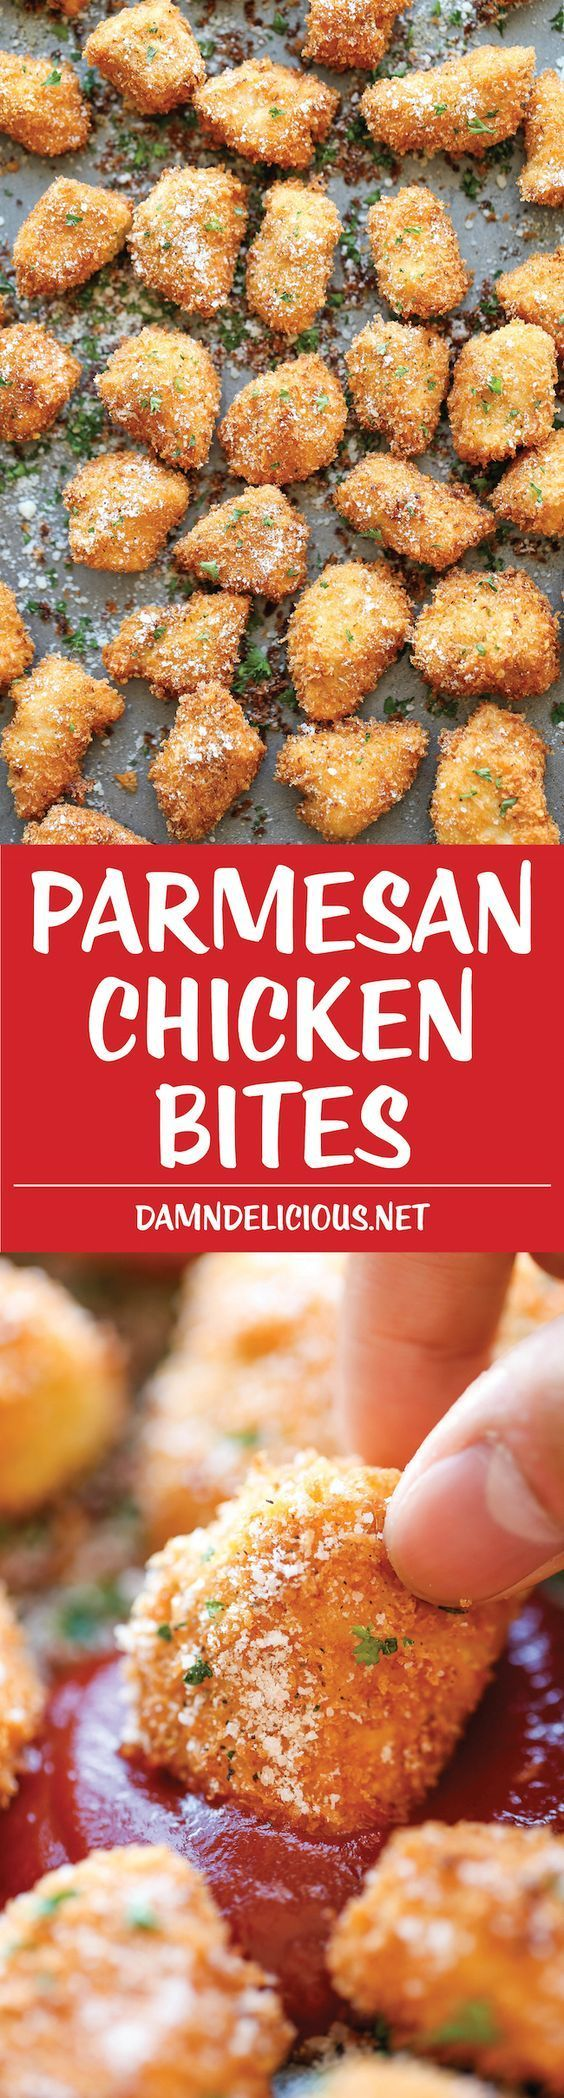 30 Minute Parmesan Chicken Bites Recipe via Damn Delicious - The best chicken nuggets you will ever have - crisp-tender and completely homemade with Parmesan goodness! - The BEST 30 Minute Meals Recipes - Easy, Quick and Delicious Family Friendly Lunch and Dinner Ideas